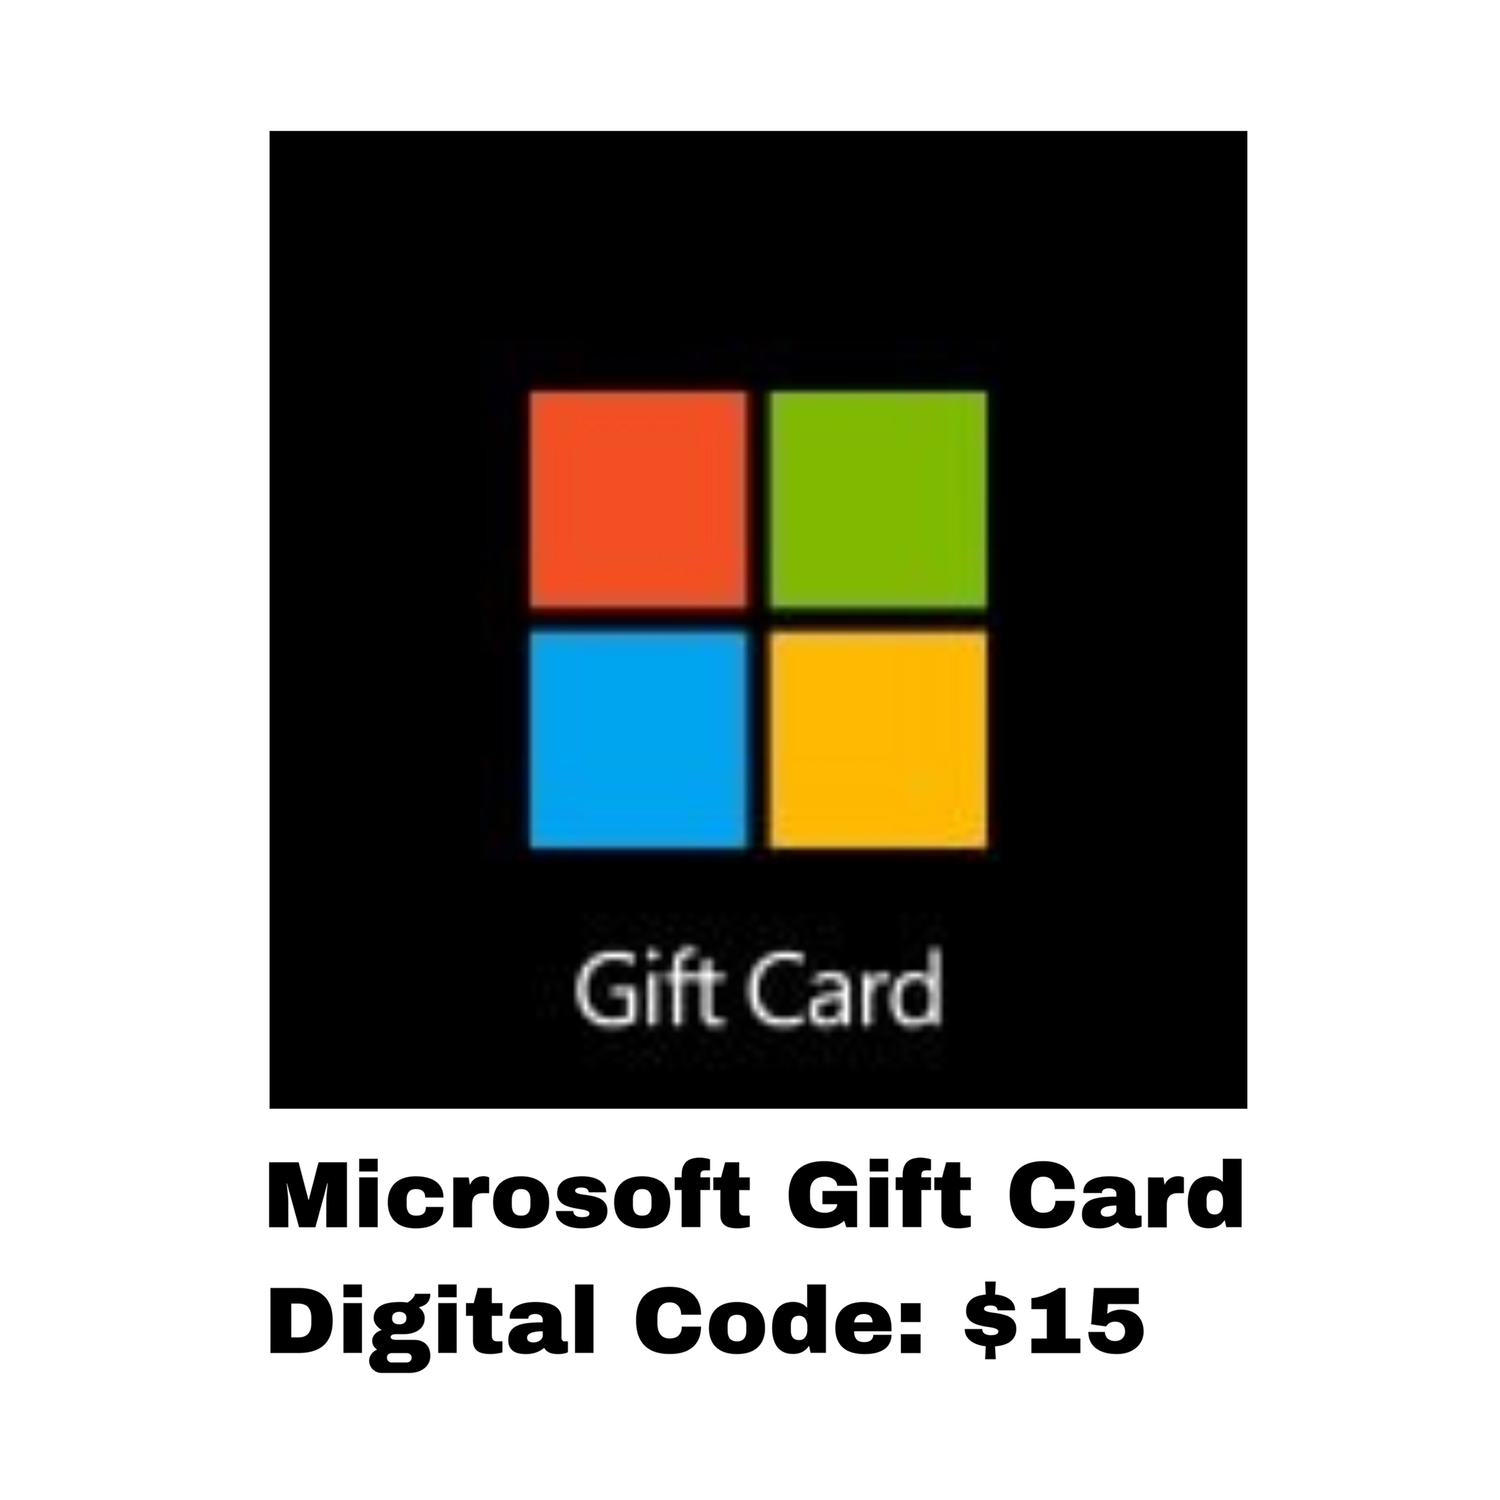 Microsoft Gift Card Digital Code: $15 - Windows / Xbox